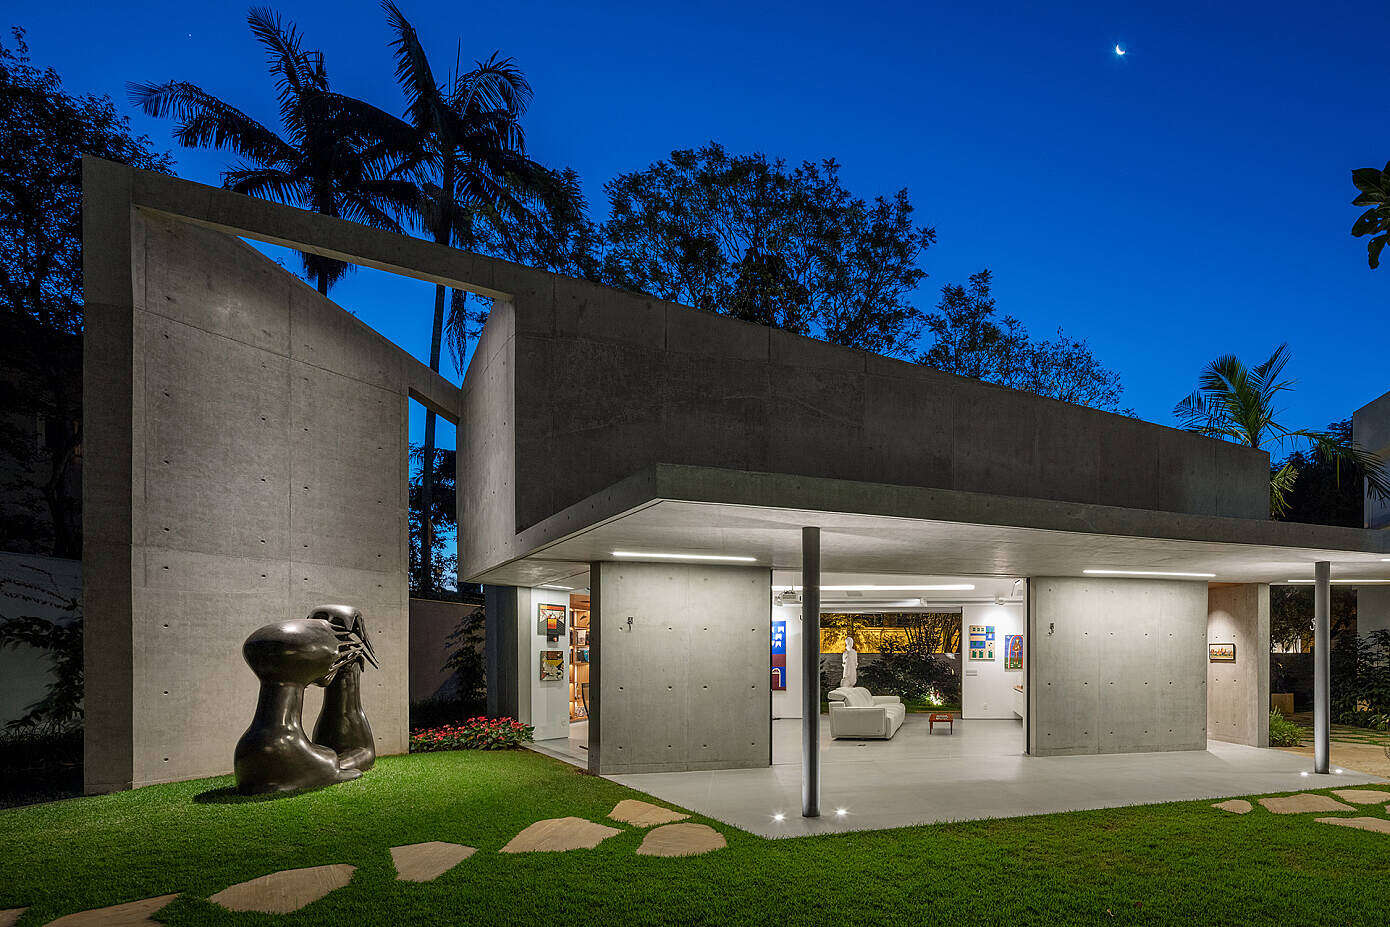 PK Residence Annex by RMAA